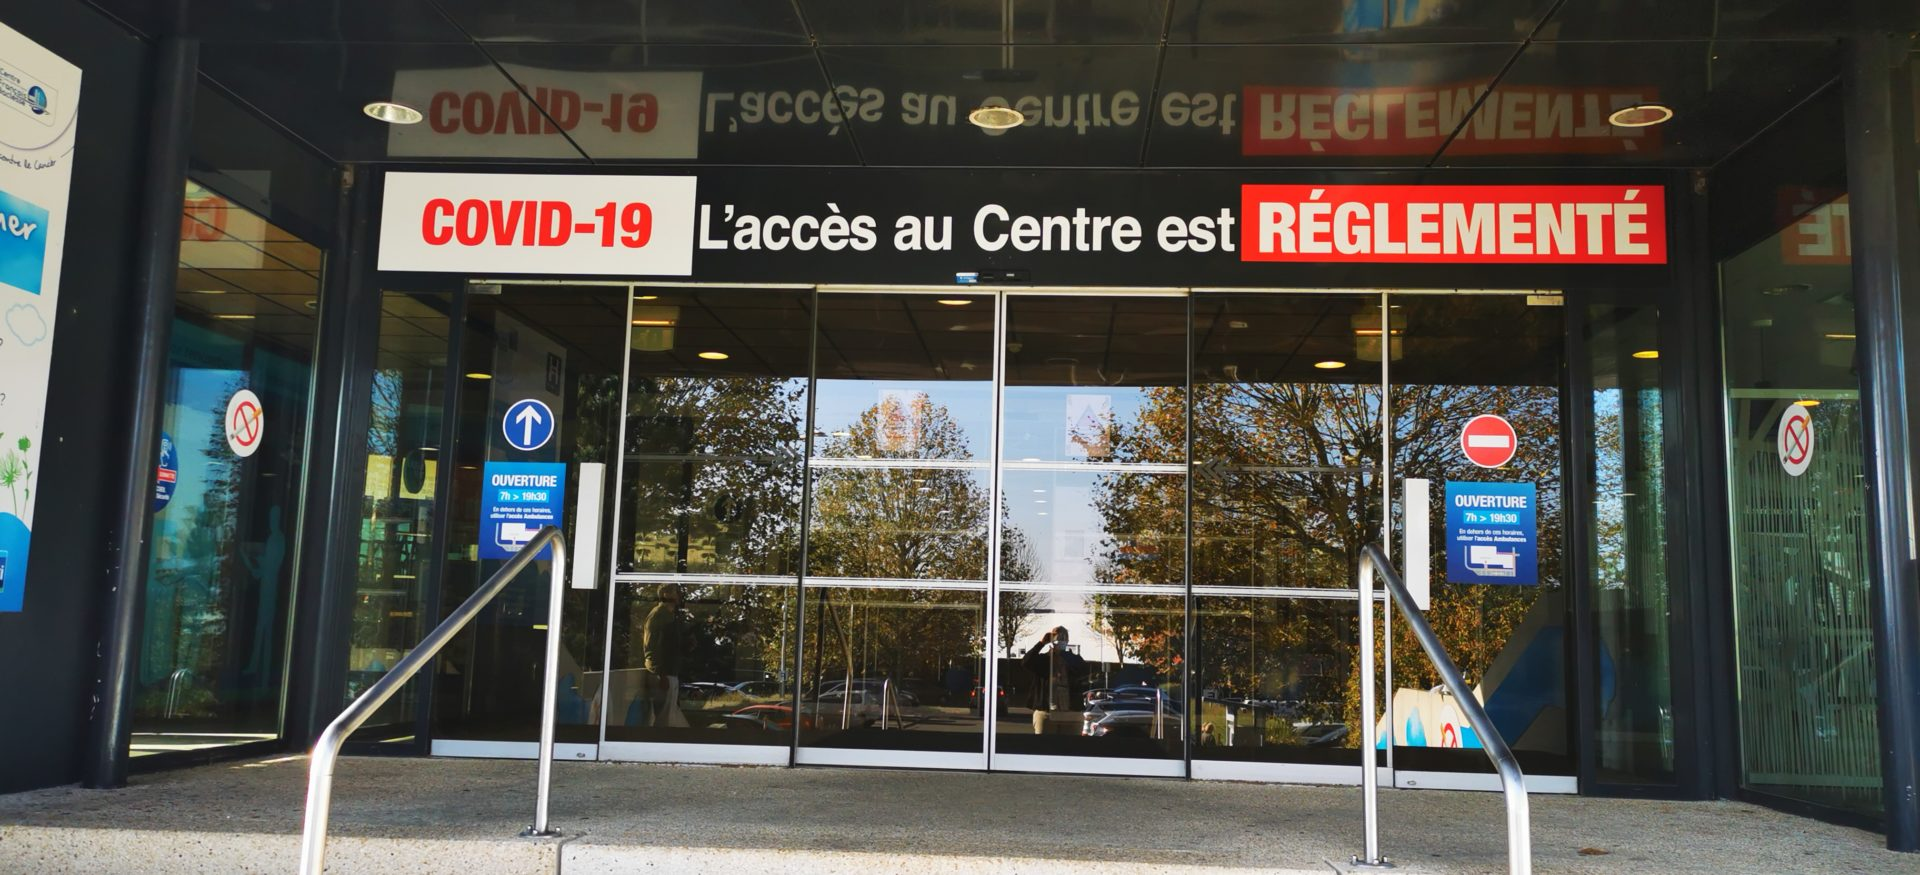 Covid: restricted access to the Centre François Baclesse